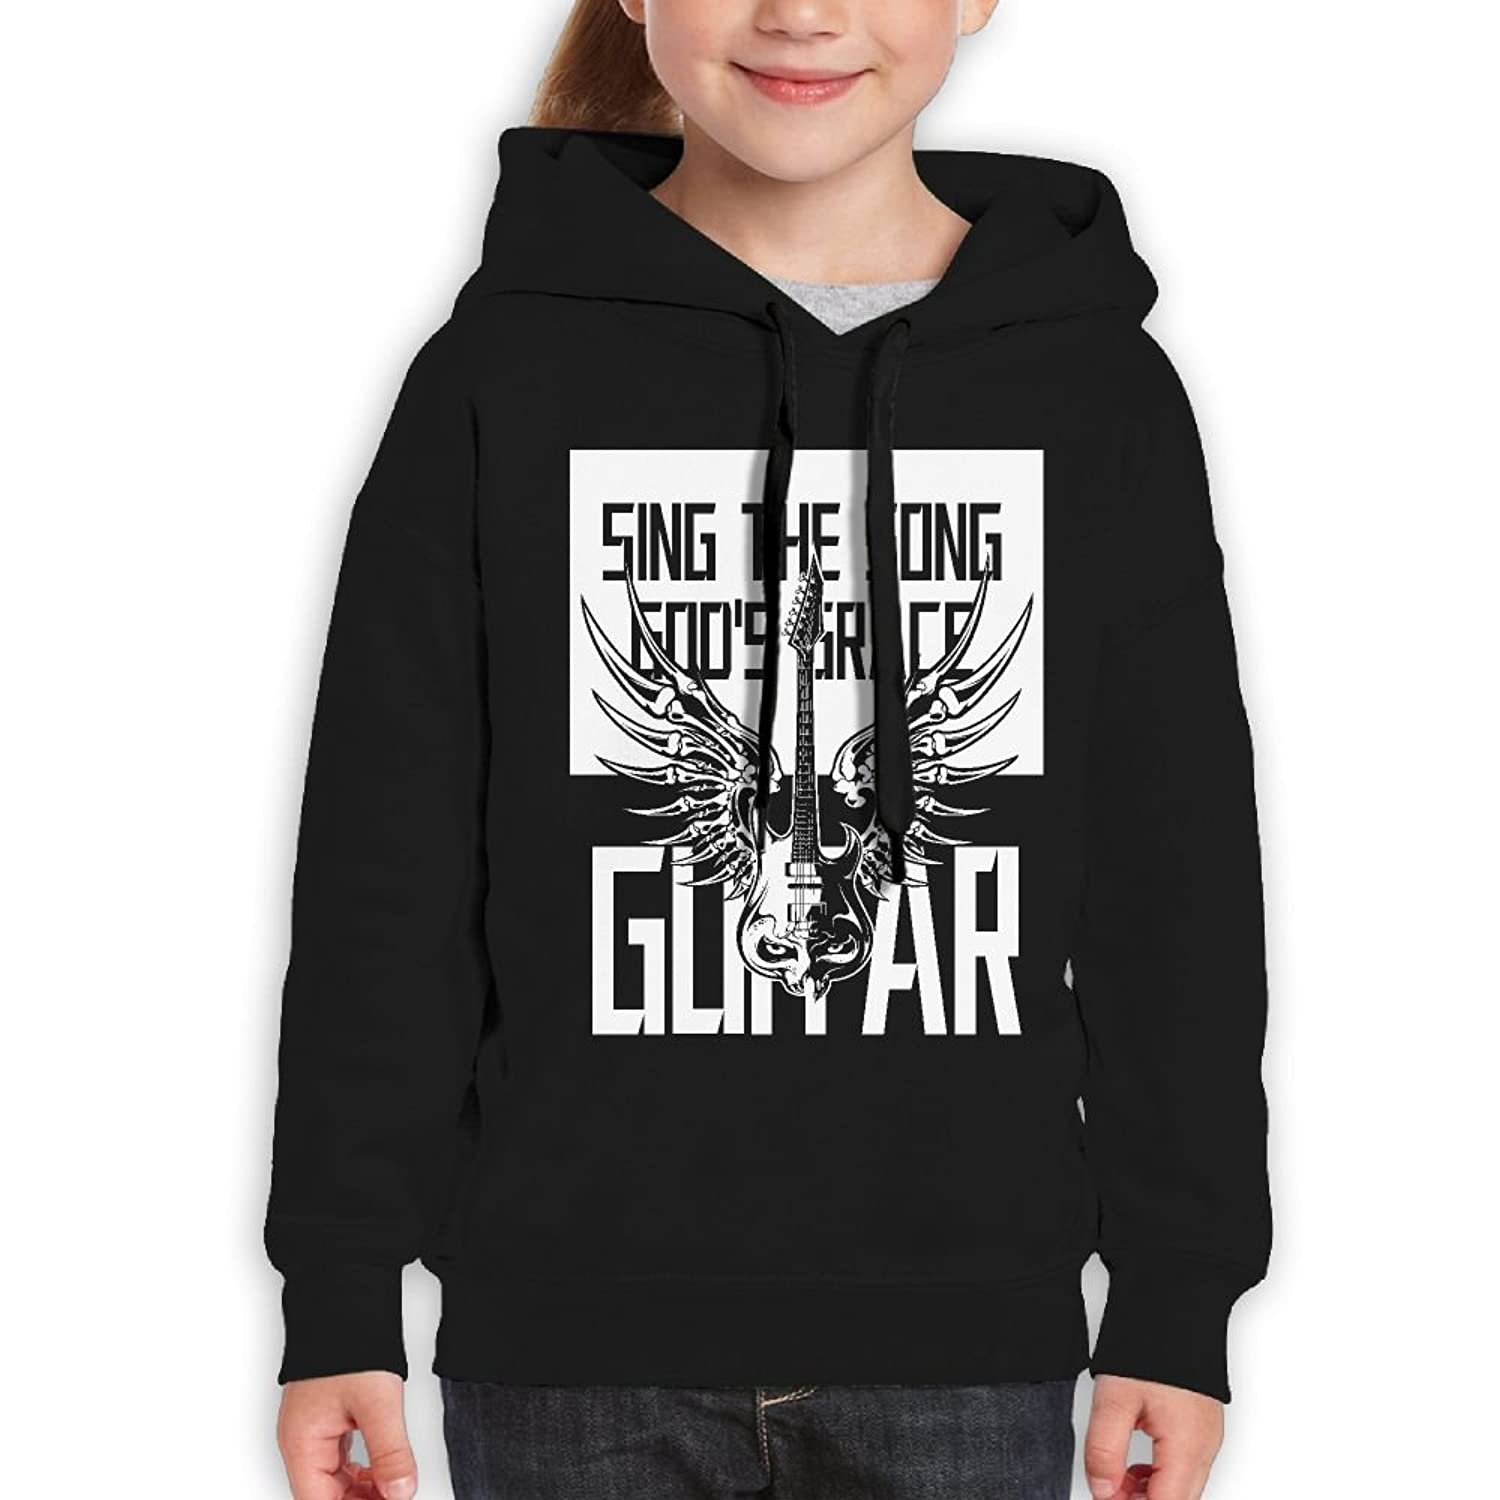 DTMN7 Amazing Guitar Sing The Song God's Grace Graphic Printed Cotton Top For Kids Unisex Spring Autumn Winter